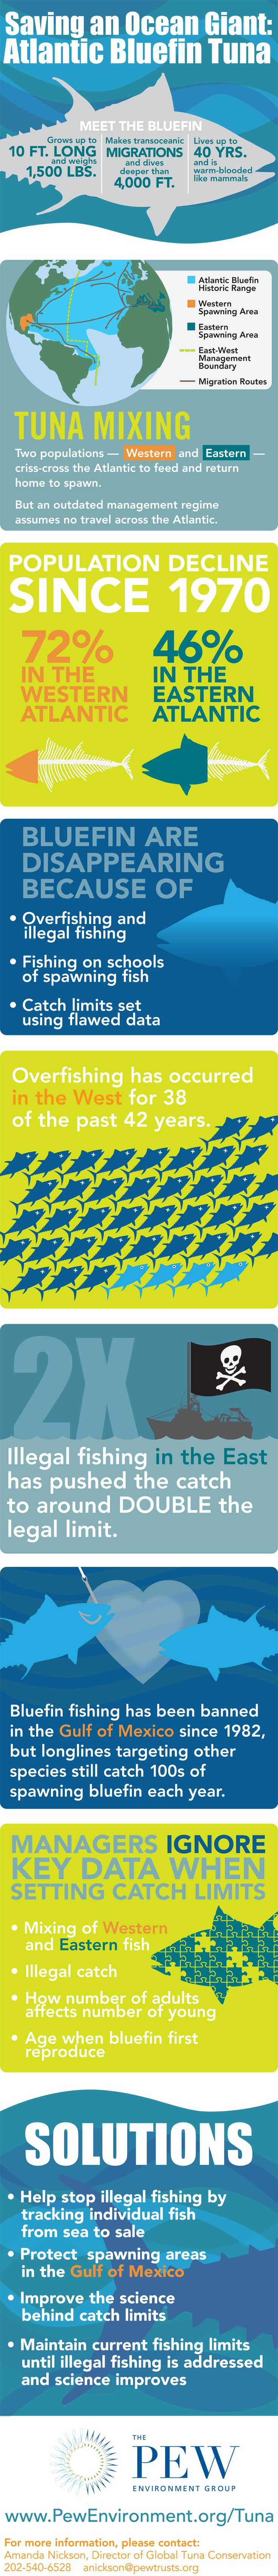 Atlantic Bluefin tuna infographic from Pew #Infographic #ICCAT